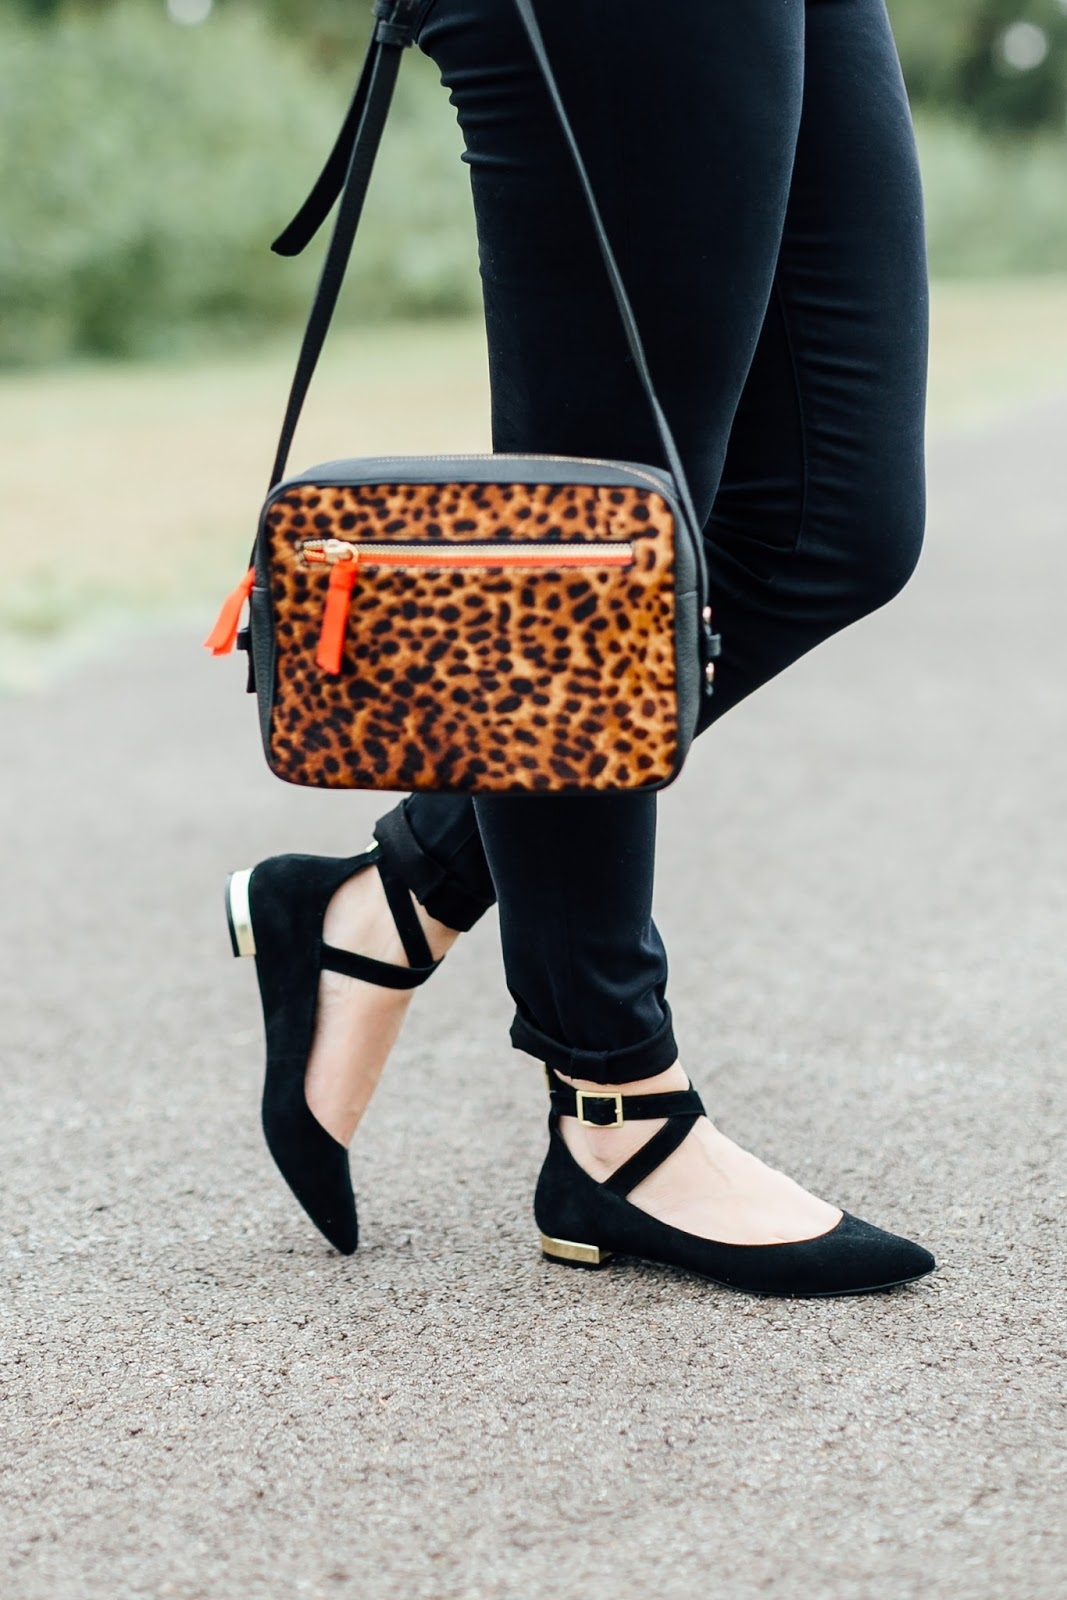 Comfortable Shoes to Take You from the Office to Date Night by East Memphis fashion blogger Waling in Memphis in High Heels